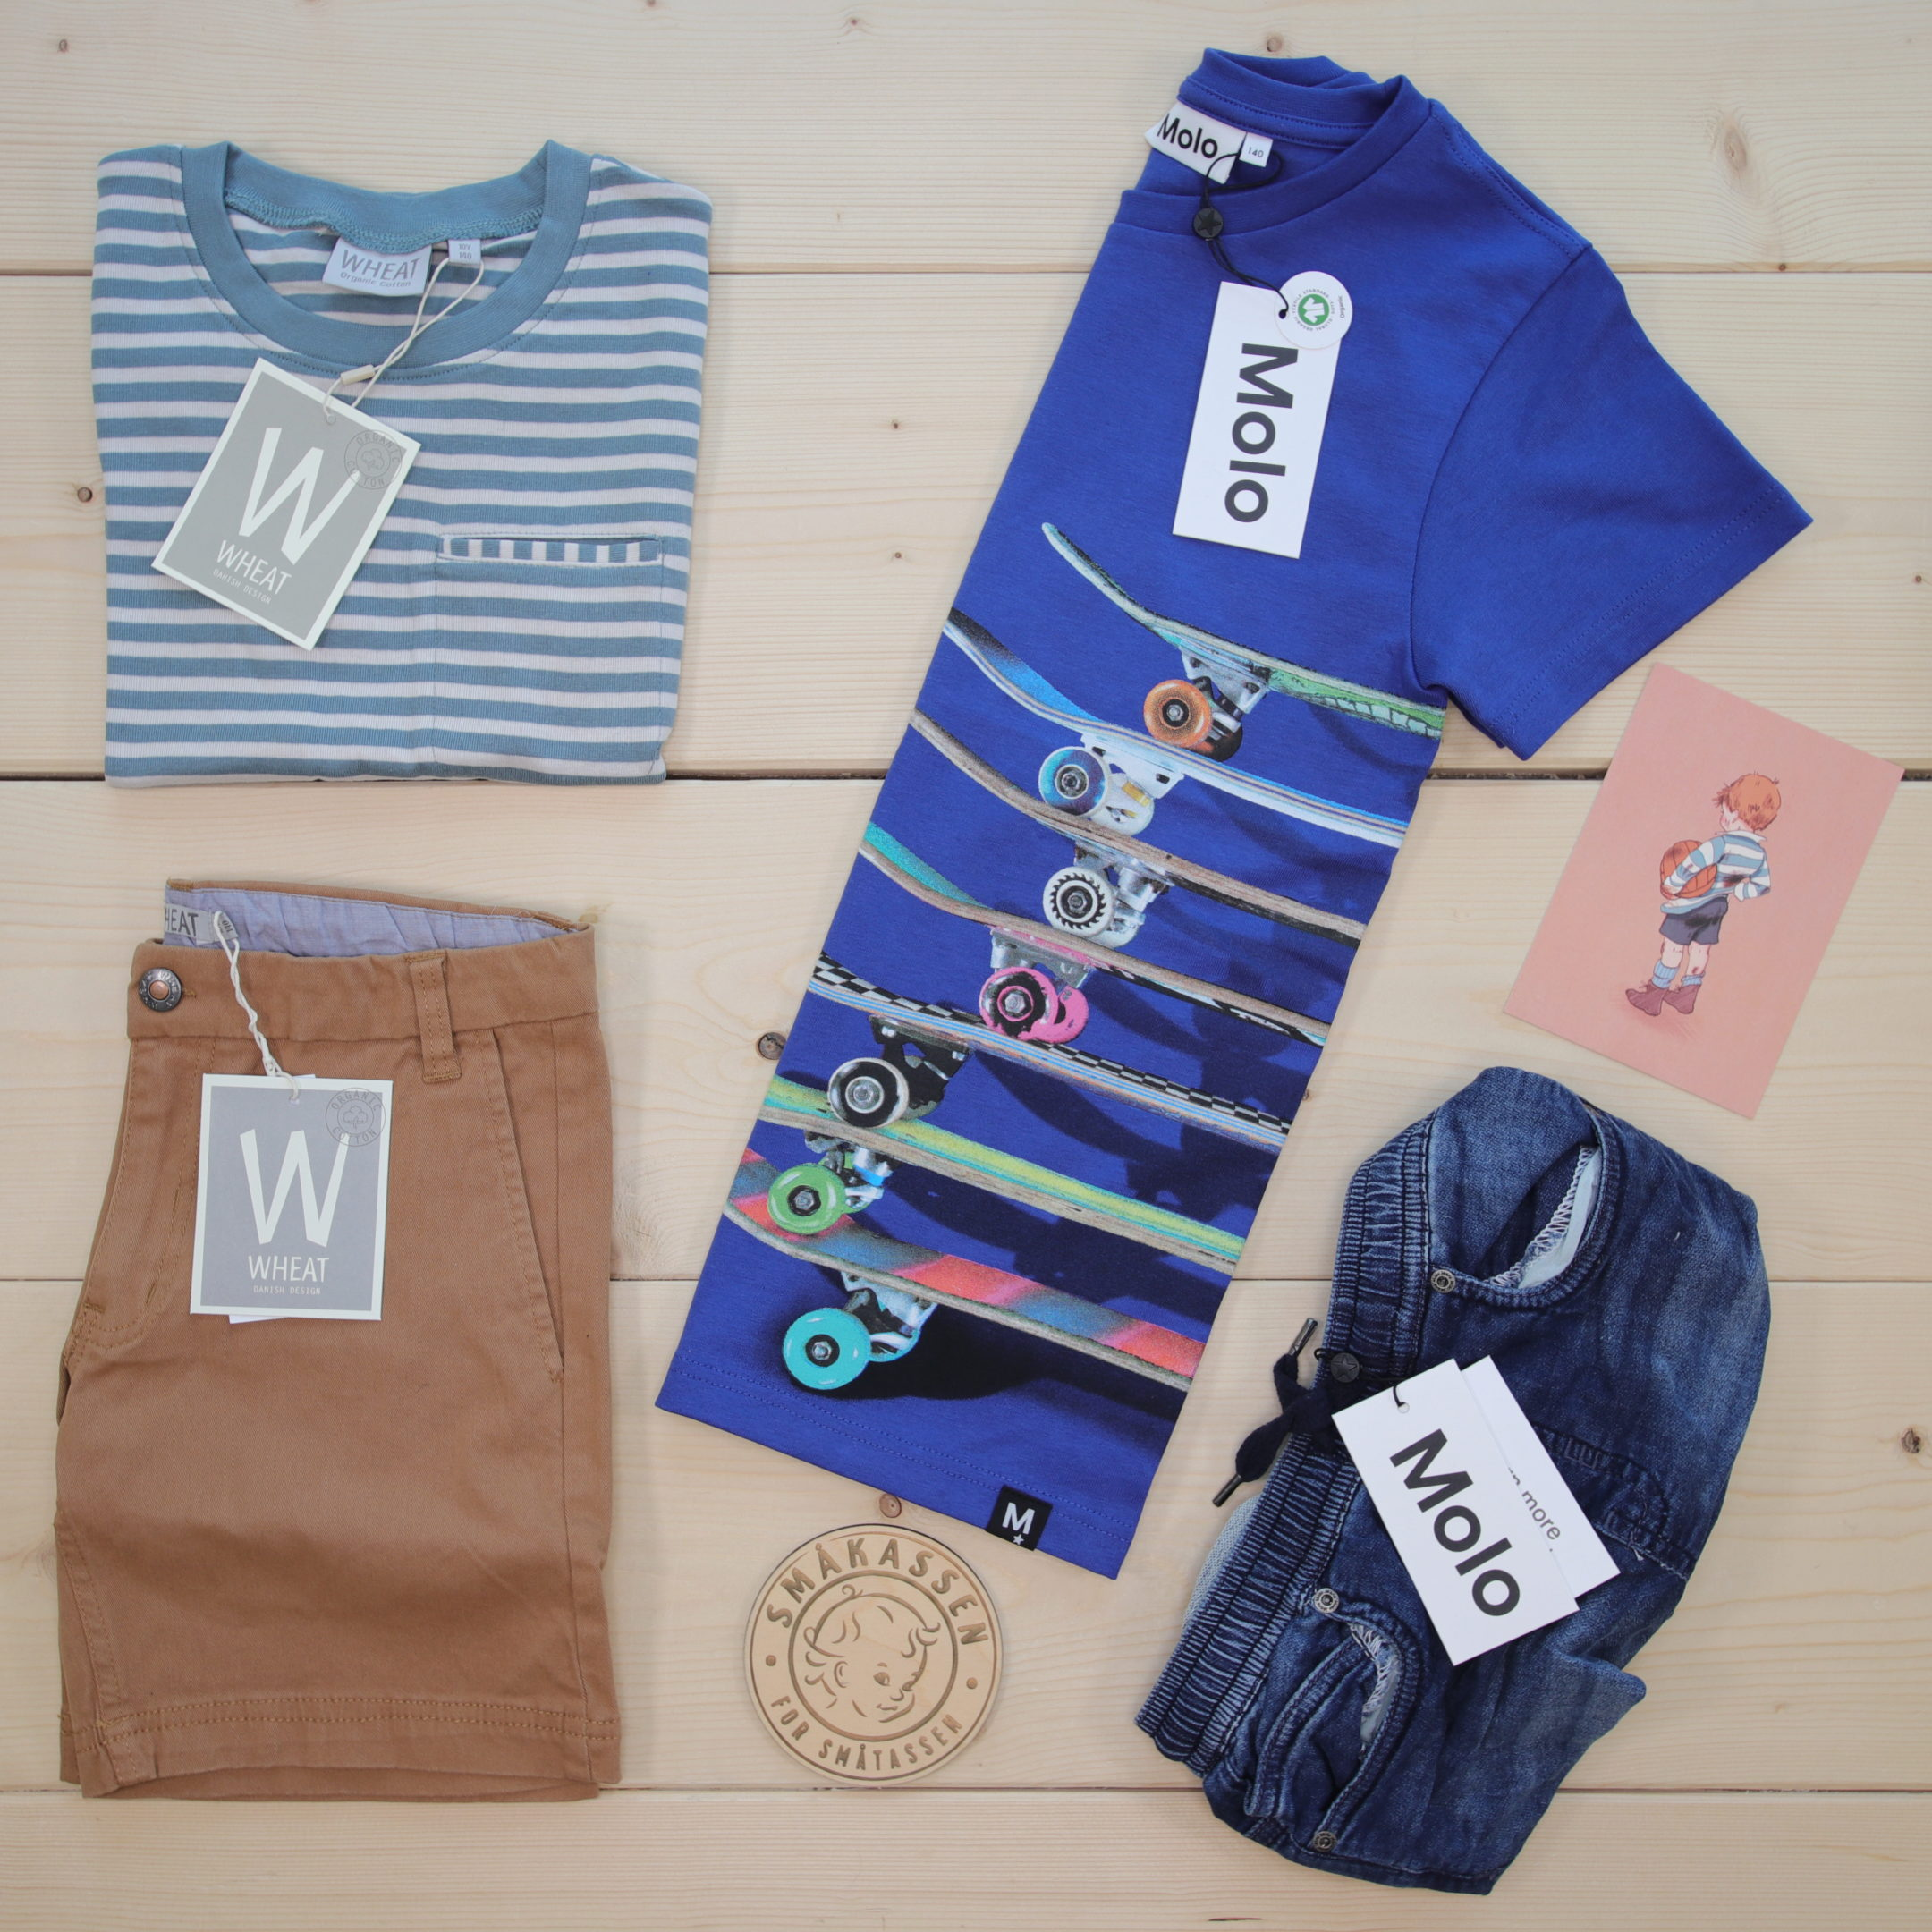 This is a 1500 NOK* Småkassen that we prepared for a boy  in the styles cute, cool, and colorful in size 140